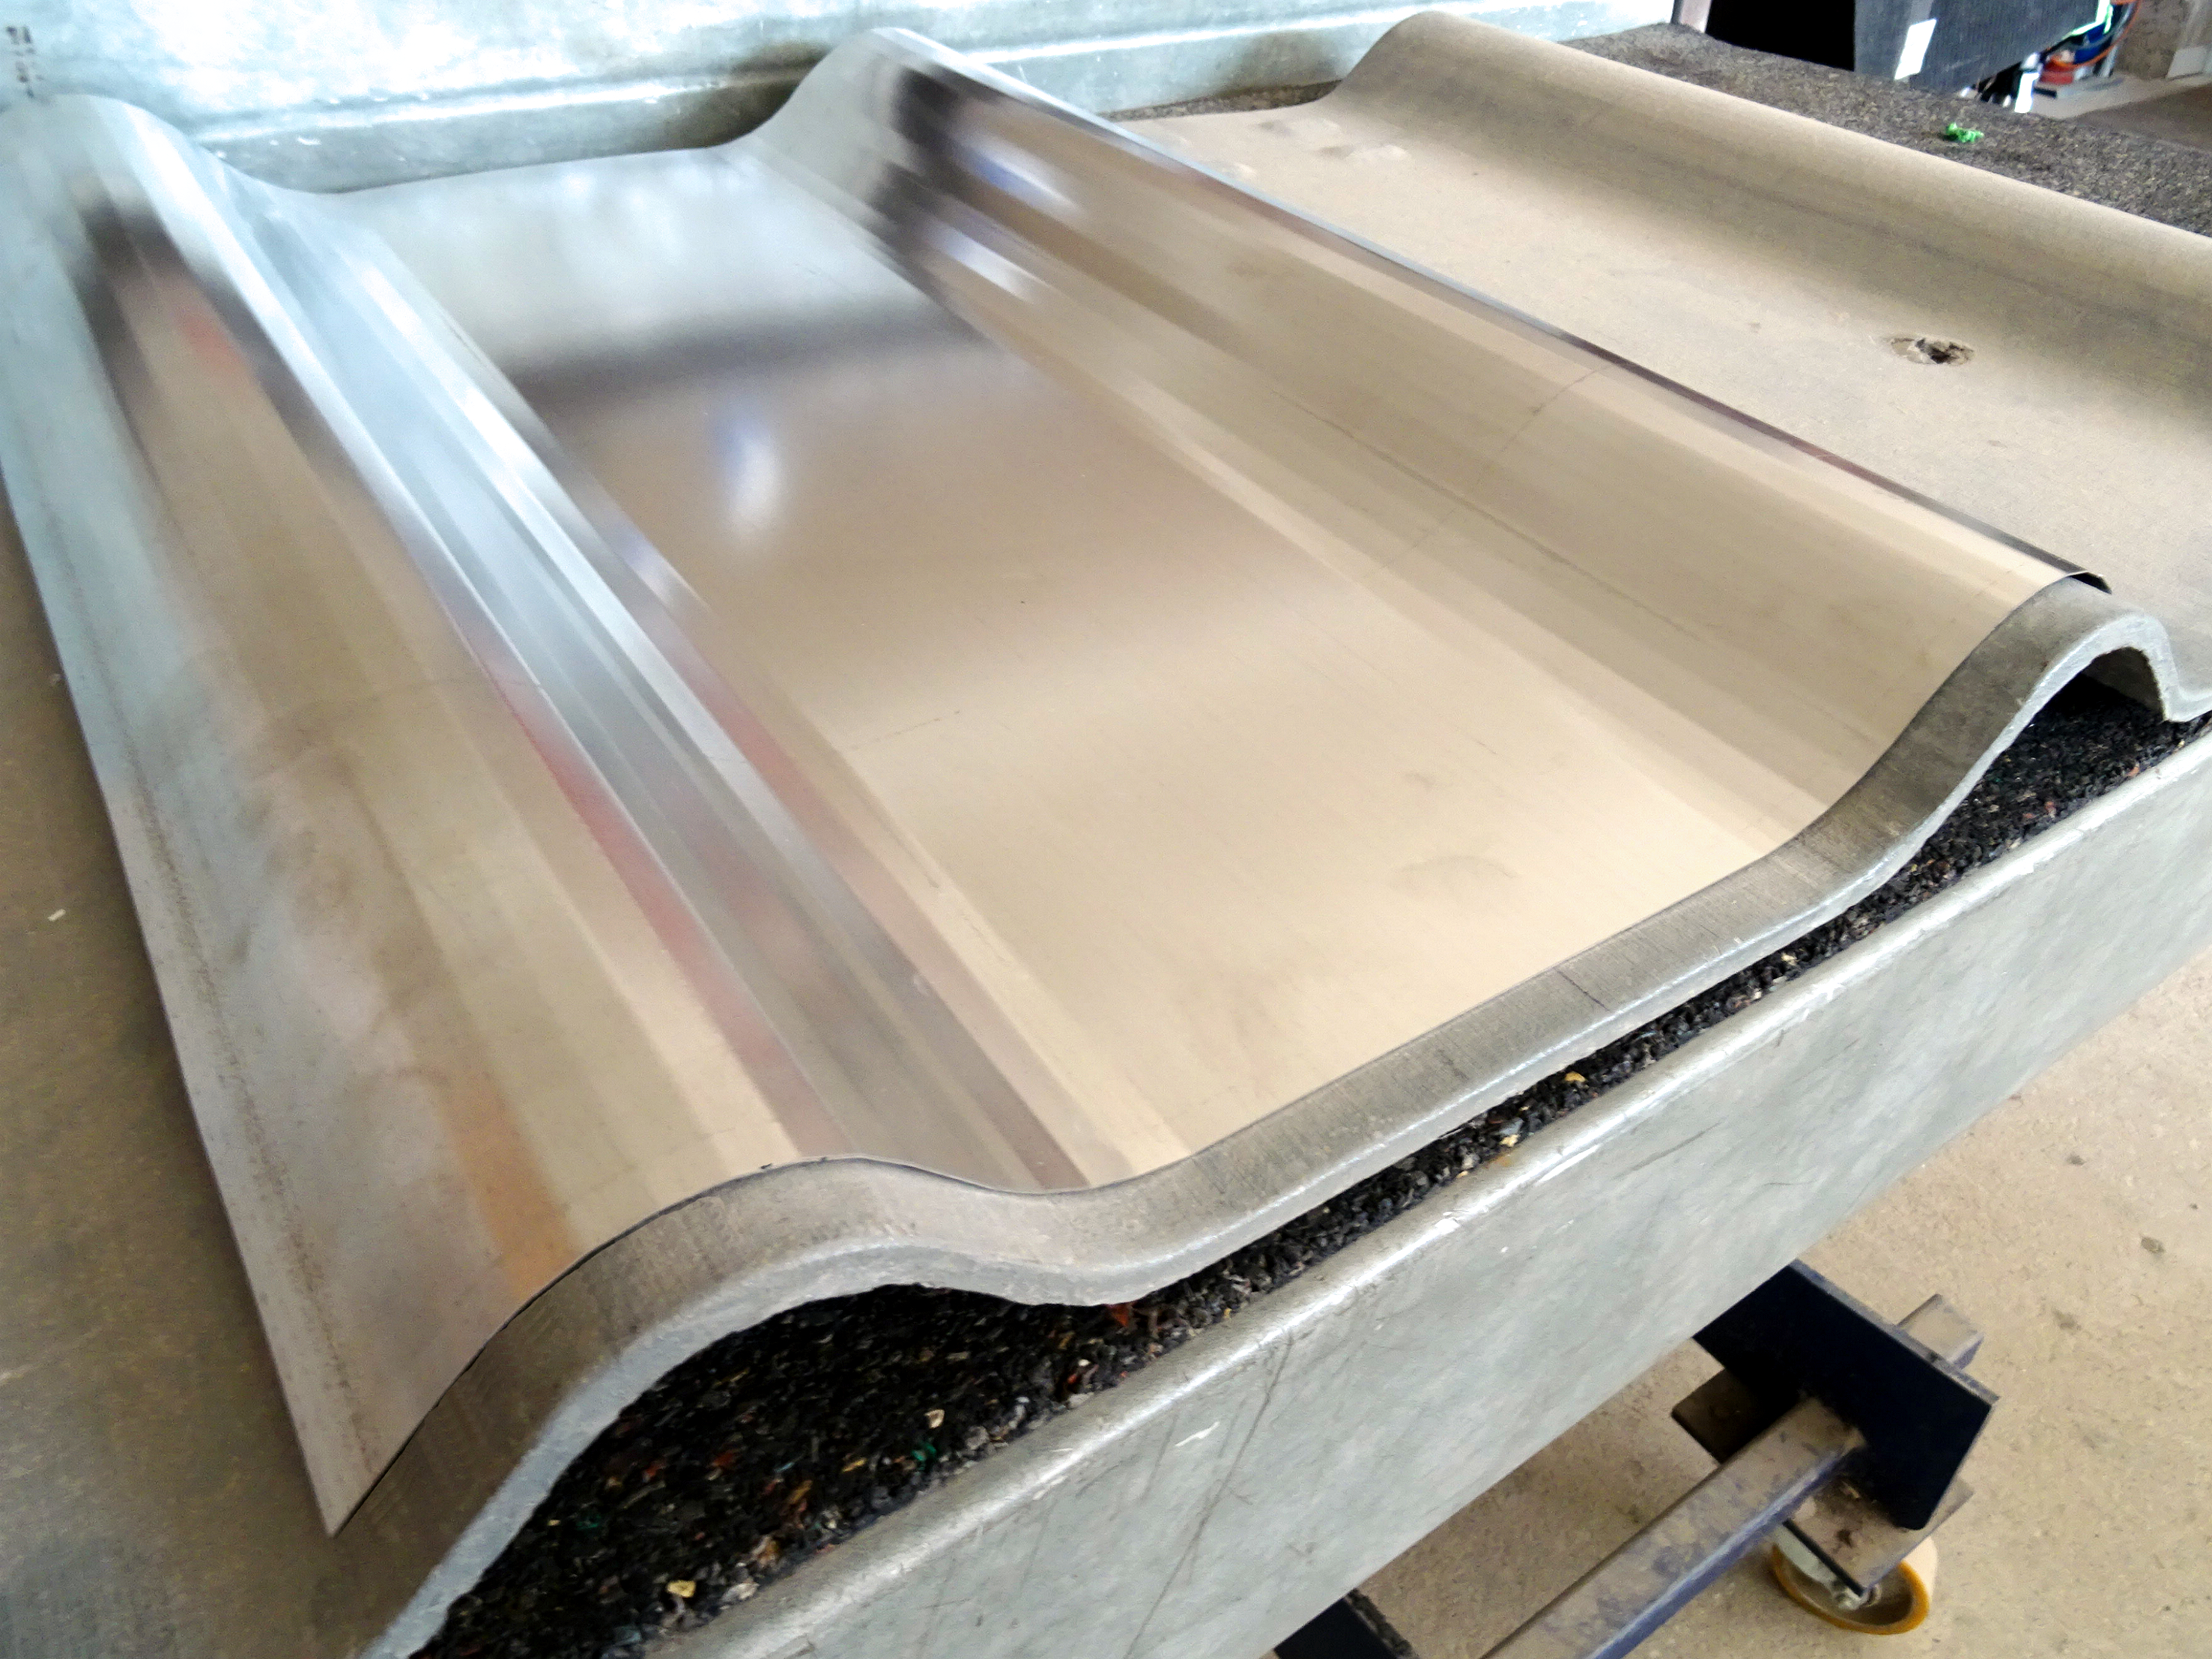 Curved stainless steel panel covering a standardized roof panel